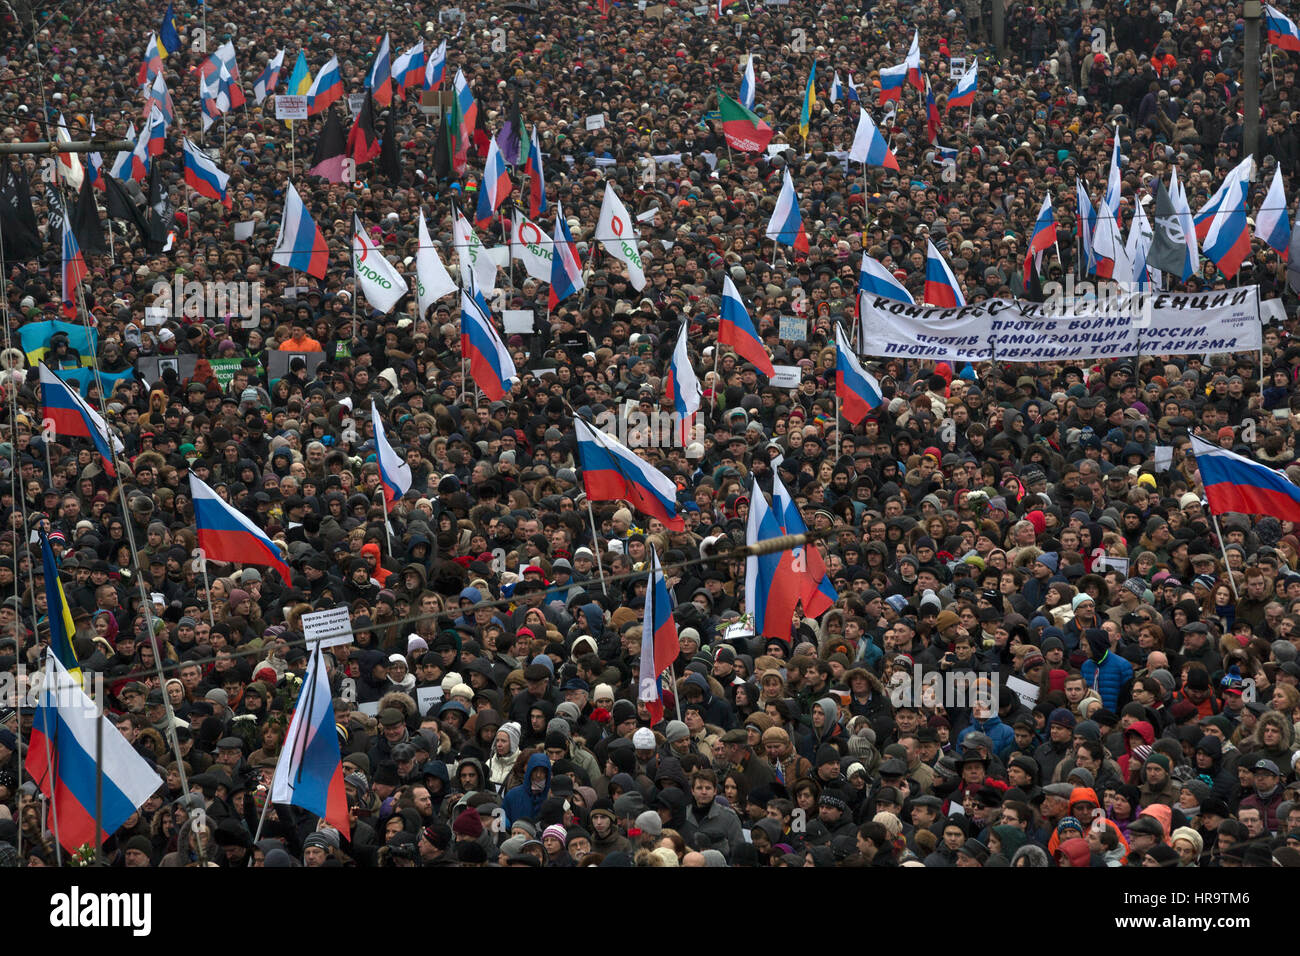 Aerial view of thousands of people attend a political rally in central Moscow, Russia - Stock Image